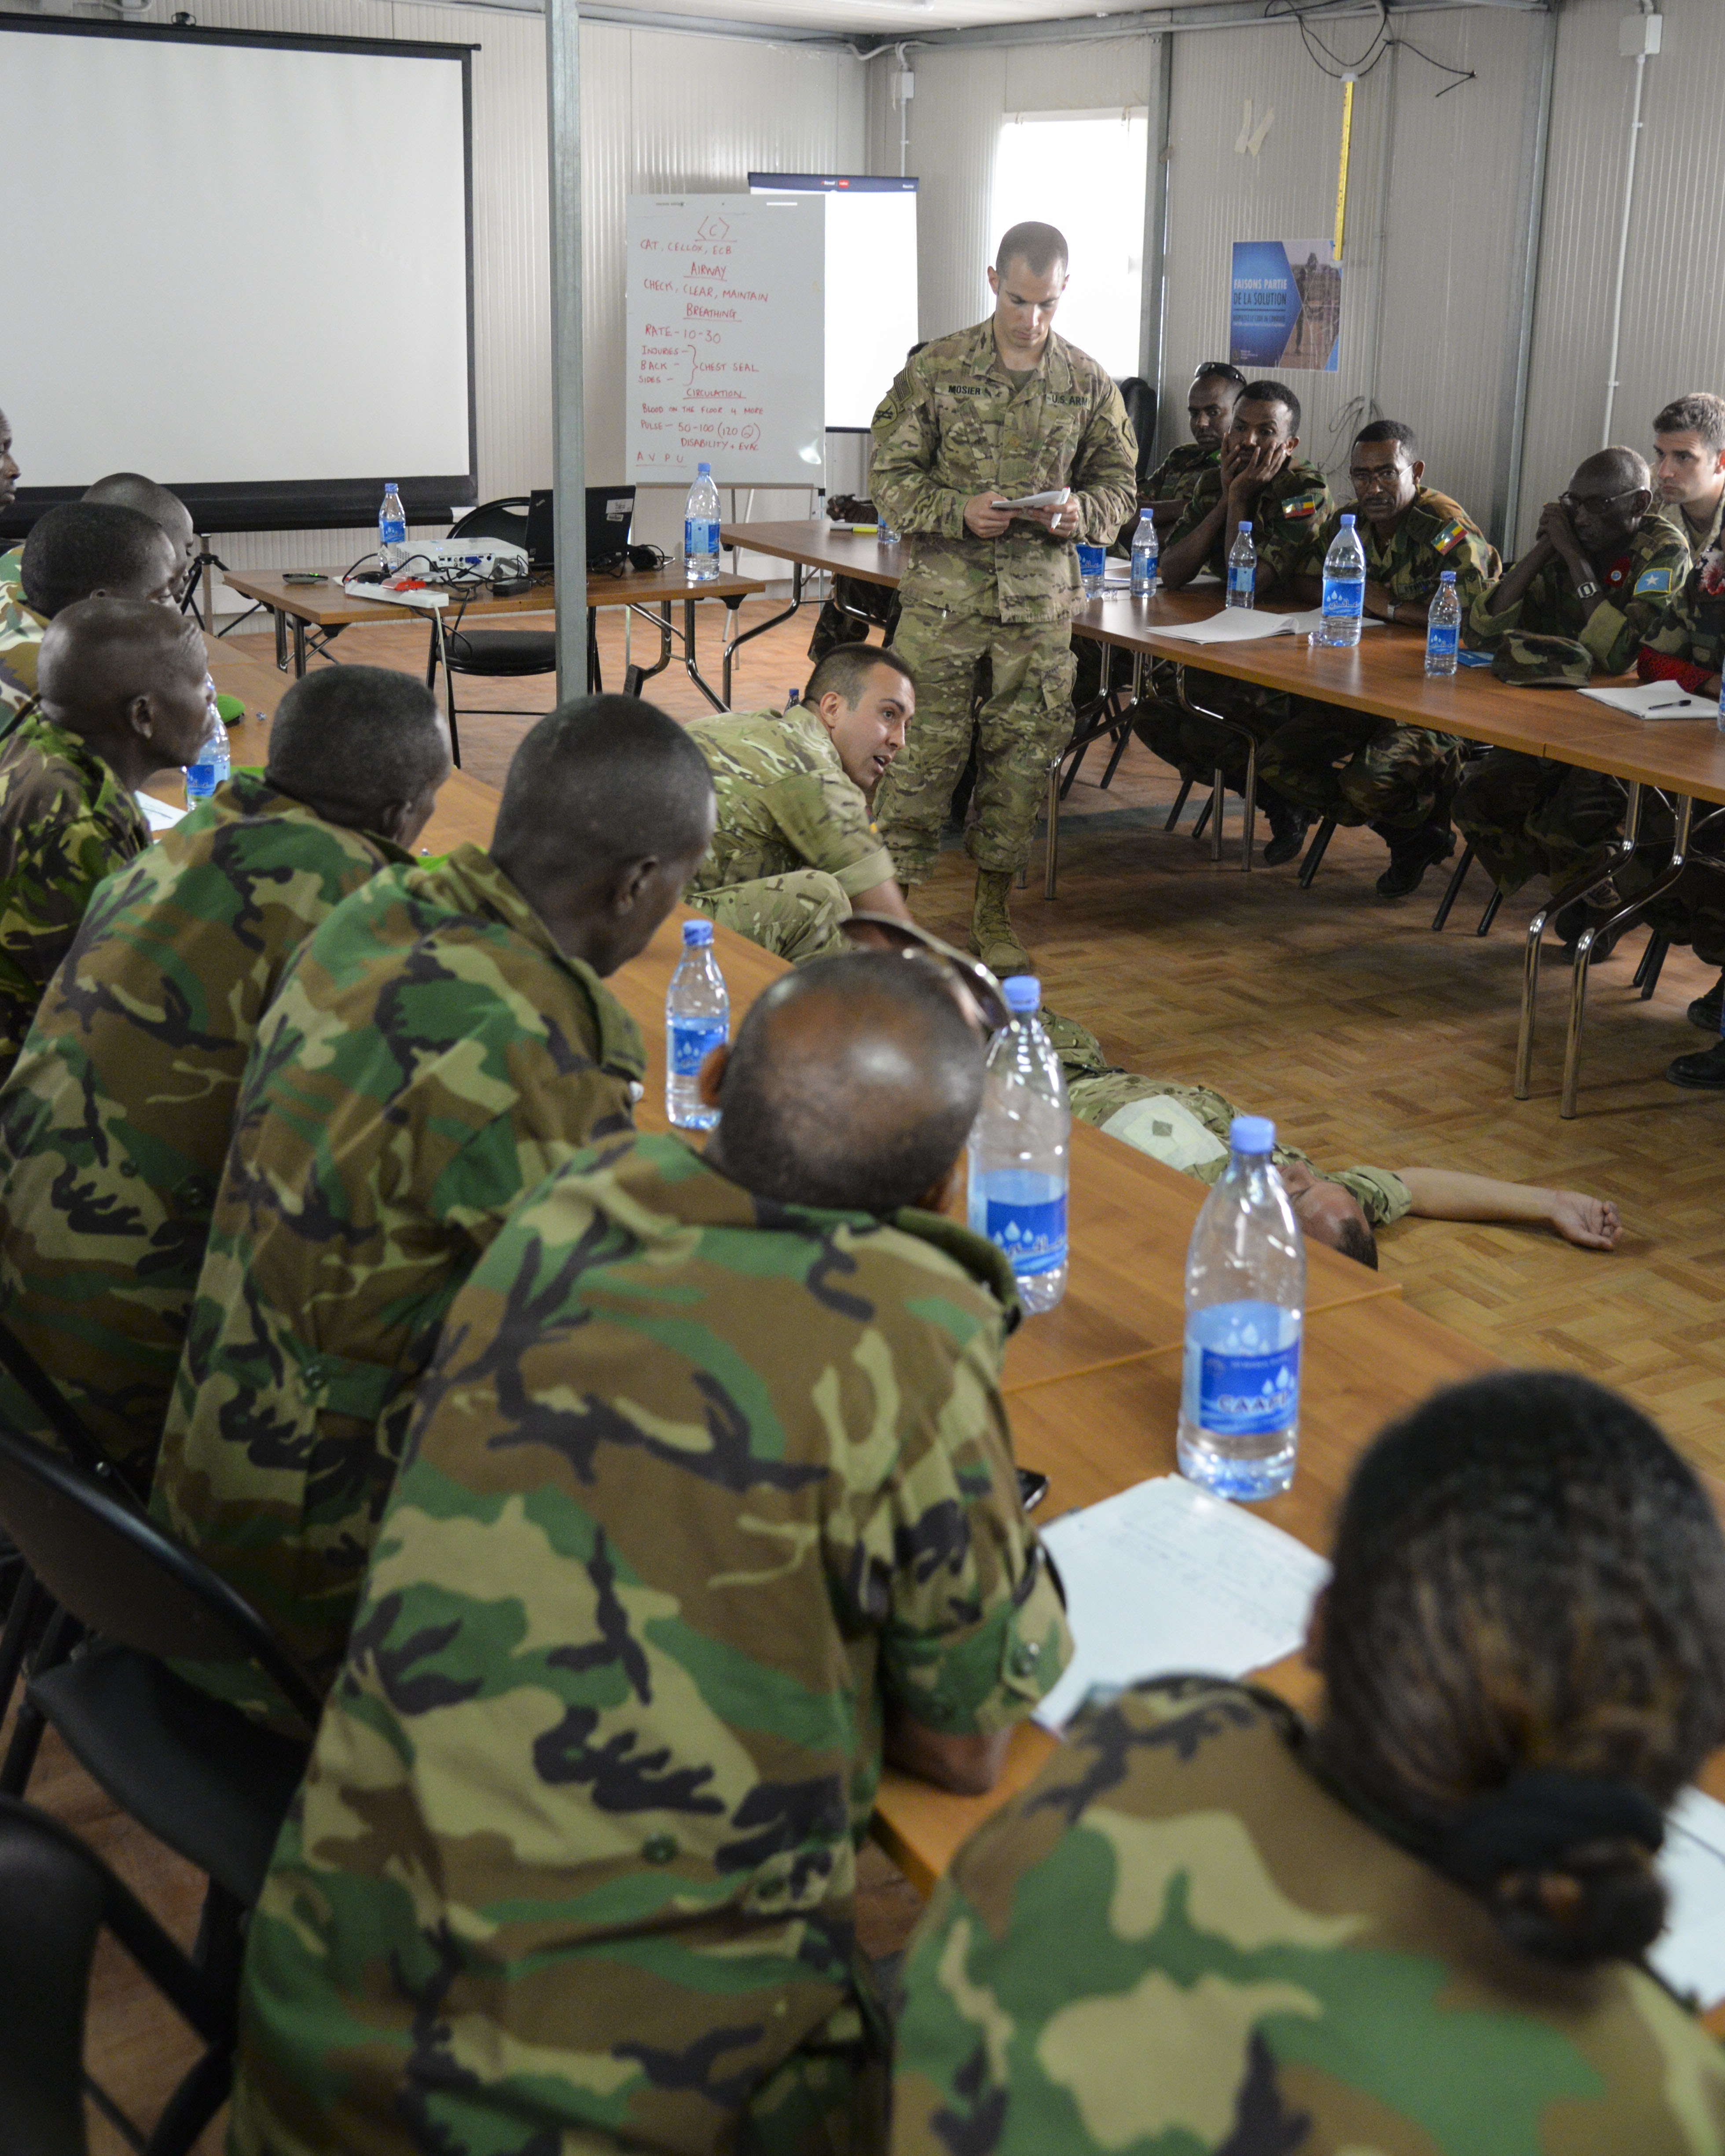 U.S. Army Maj. Andrew Mosier, 403rd Civil Affairs Battalion physician, shares best practices with African Union Mission in Somalia and Somali combat medics about methods of providing casualty care under hostile fire during the AMISOM Sector Medical Conference in Mogadishu, Somalia, Sept. 6, 2016. During the conference, medics practiced triage (a method of prioritizing care among multiple casualties to save the most lives), applying multiple tourniquets in a mass casualty exercise, and maintaining effective communication in a crisis. (U.S. Air Force photo by Staff Sgt. Benjamin Raughton)